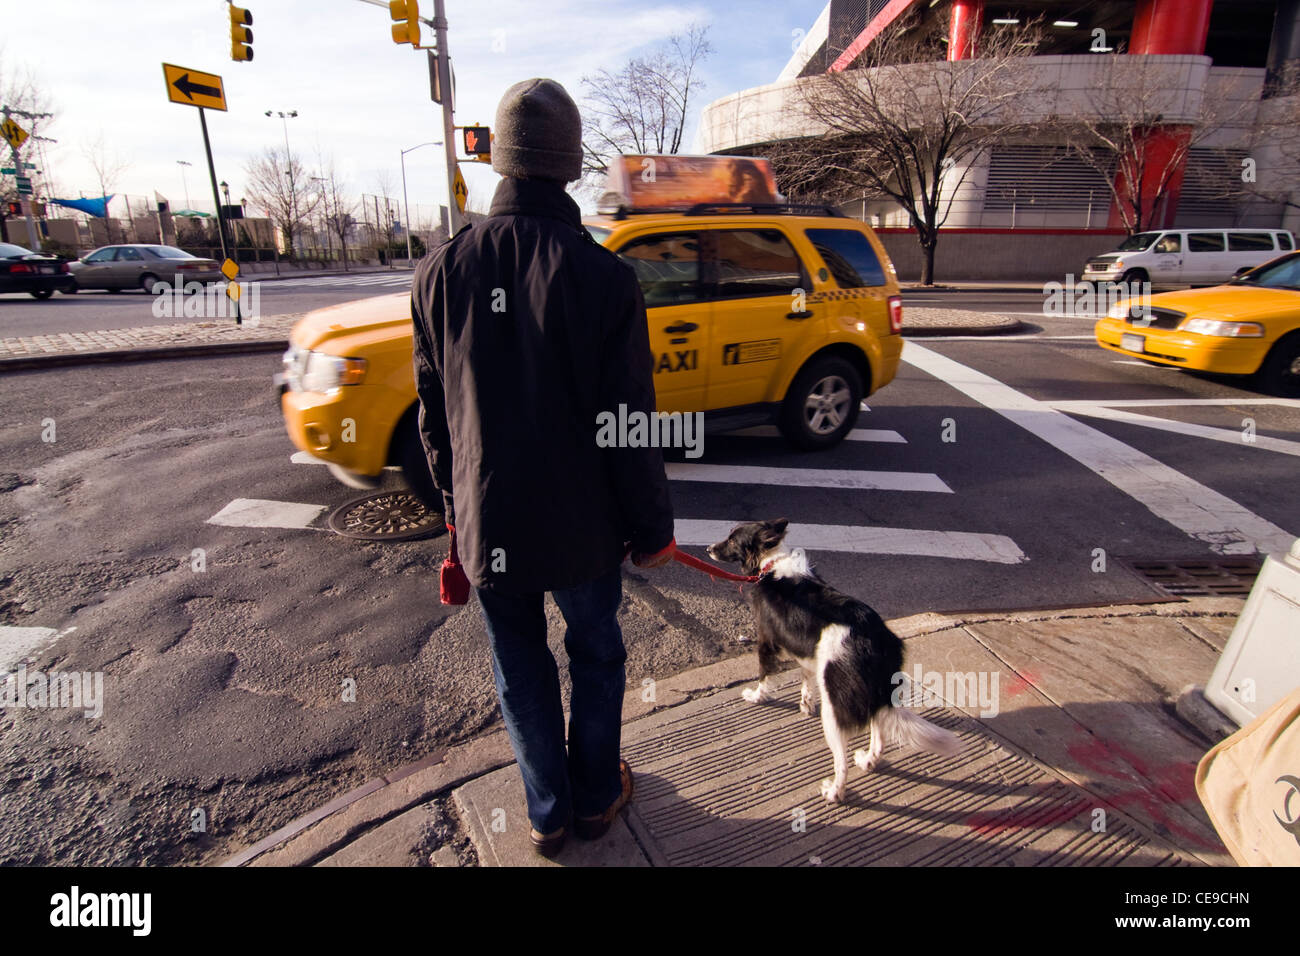 Man with knit cap and winter coat standing with his dog on street corner in New York City waiting to cross a busy - Stock Image